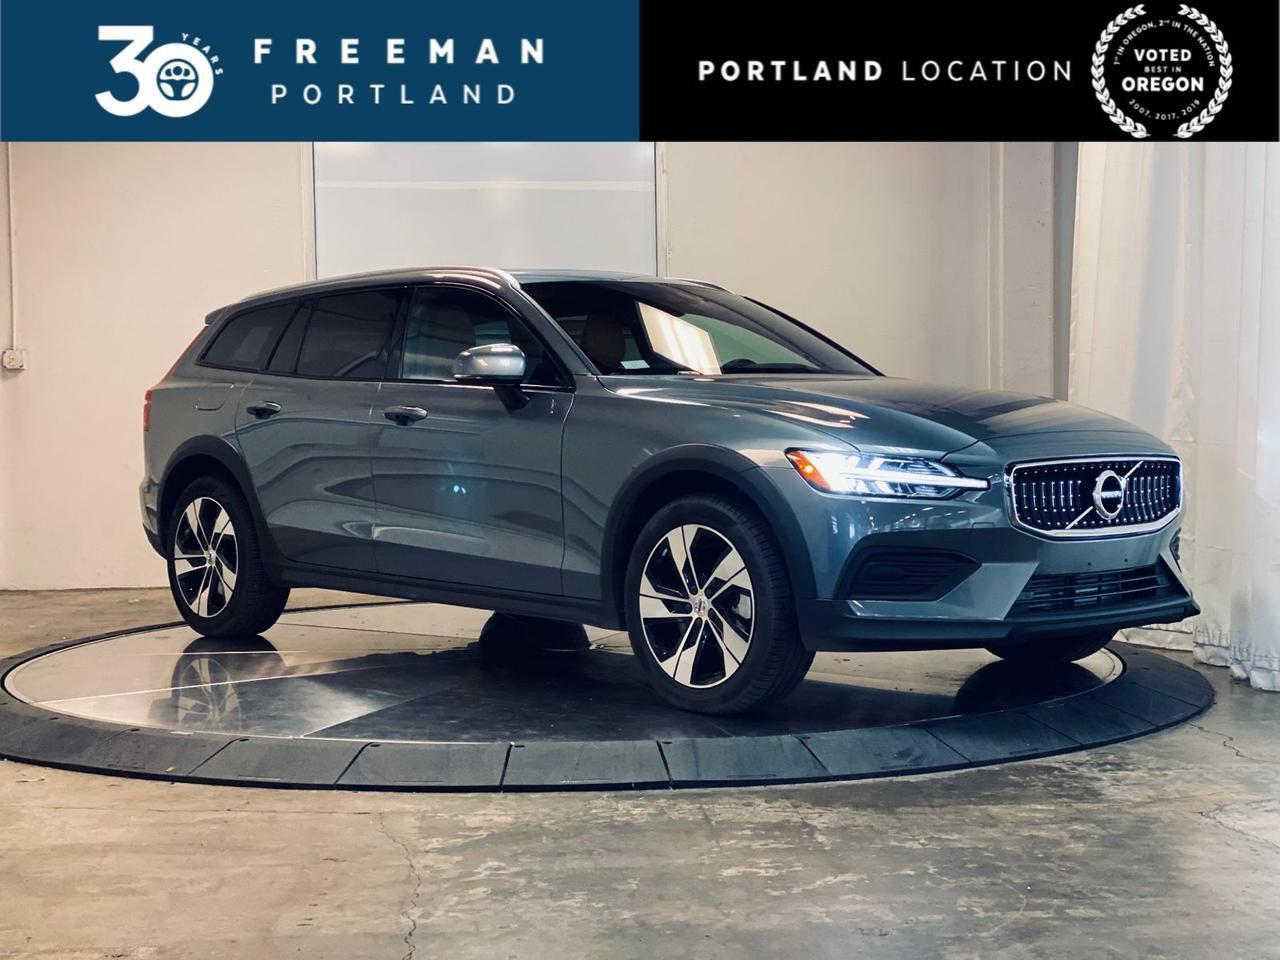 2020 Volvo V60 Cross Country AWD Blind Spot Assist Panoramic Portland OR